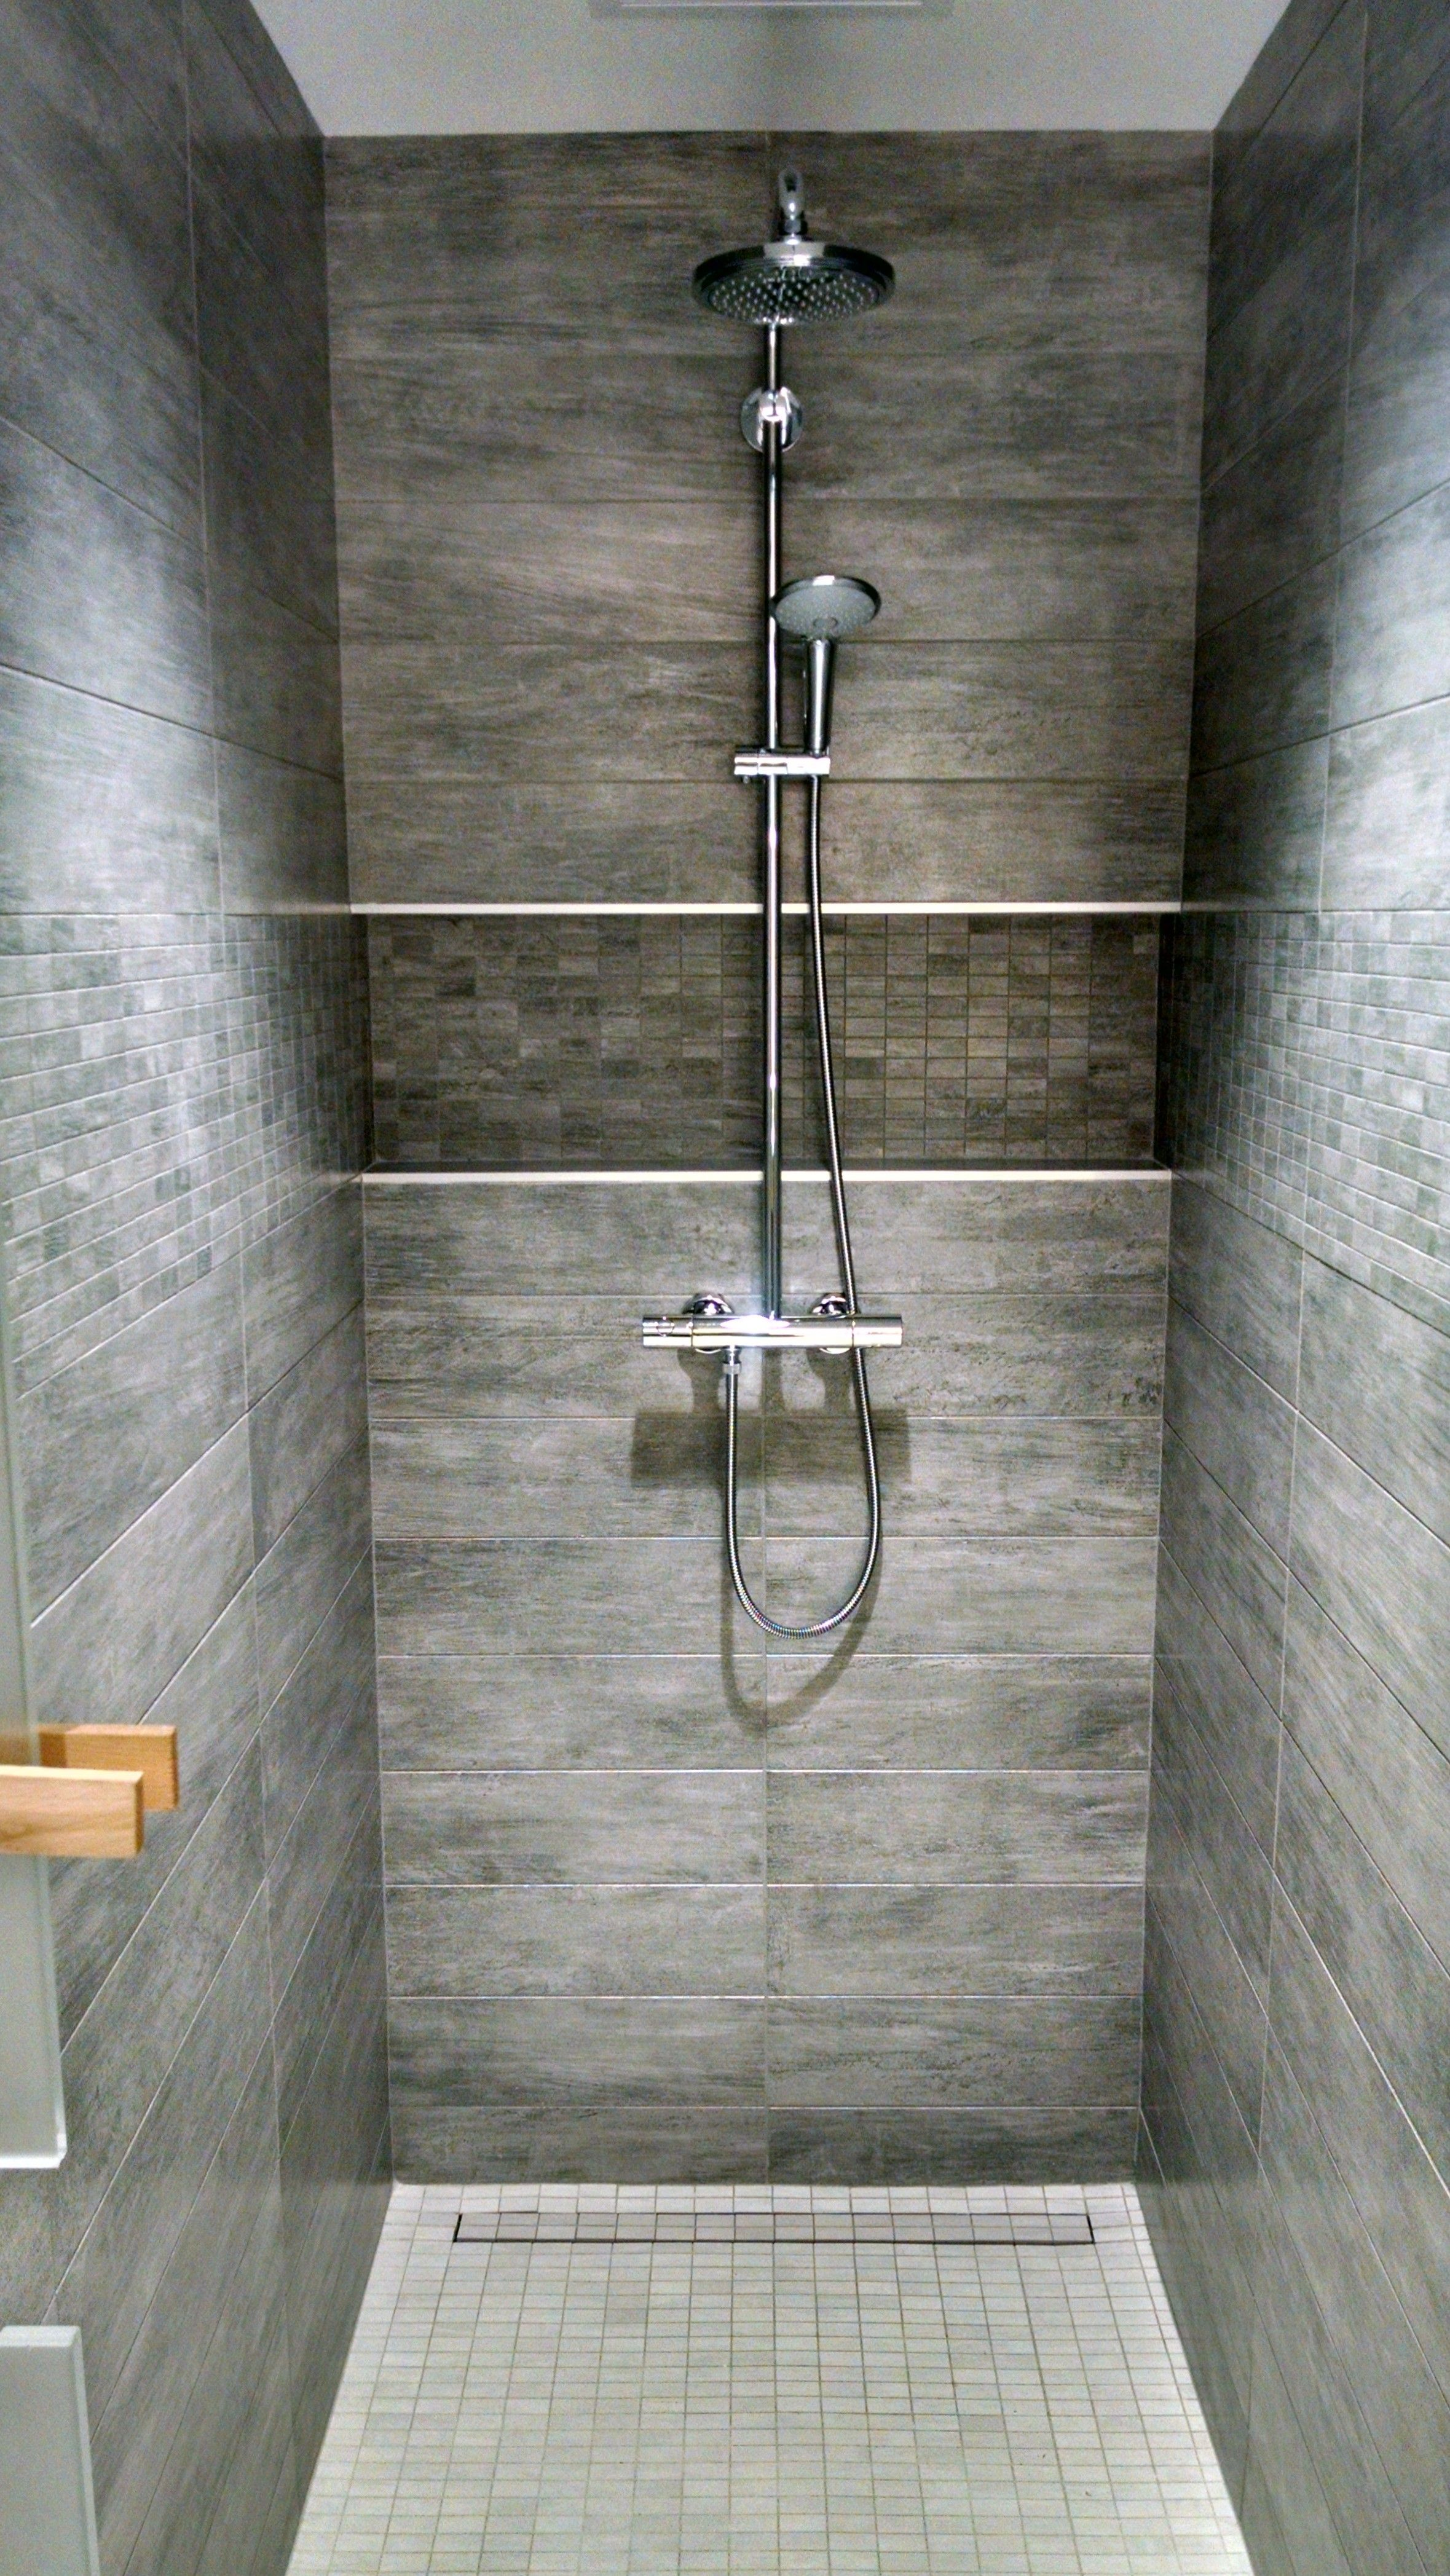 Locker Room Shower Grohe Valve With Tile Covered Linear Drain No